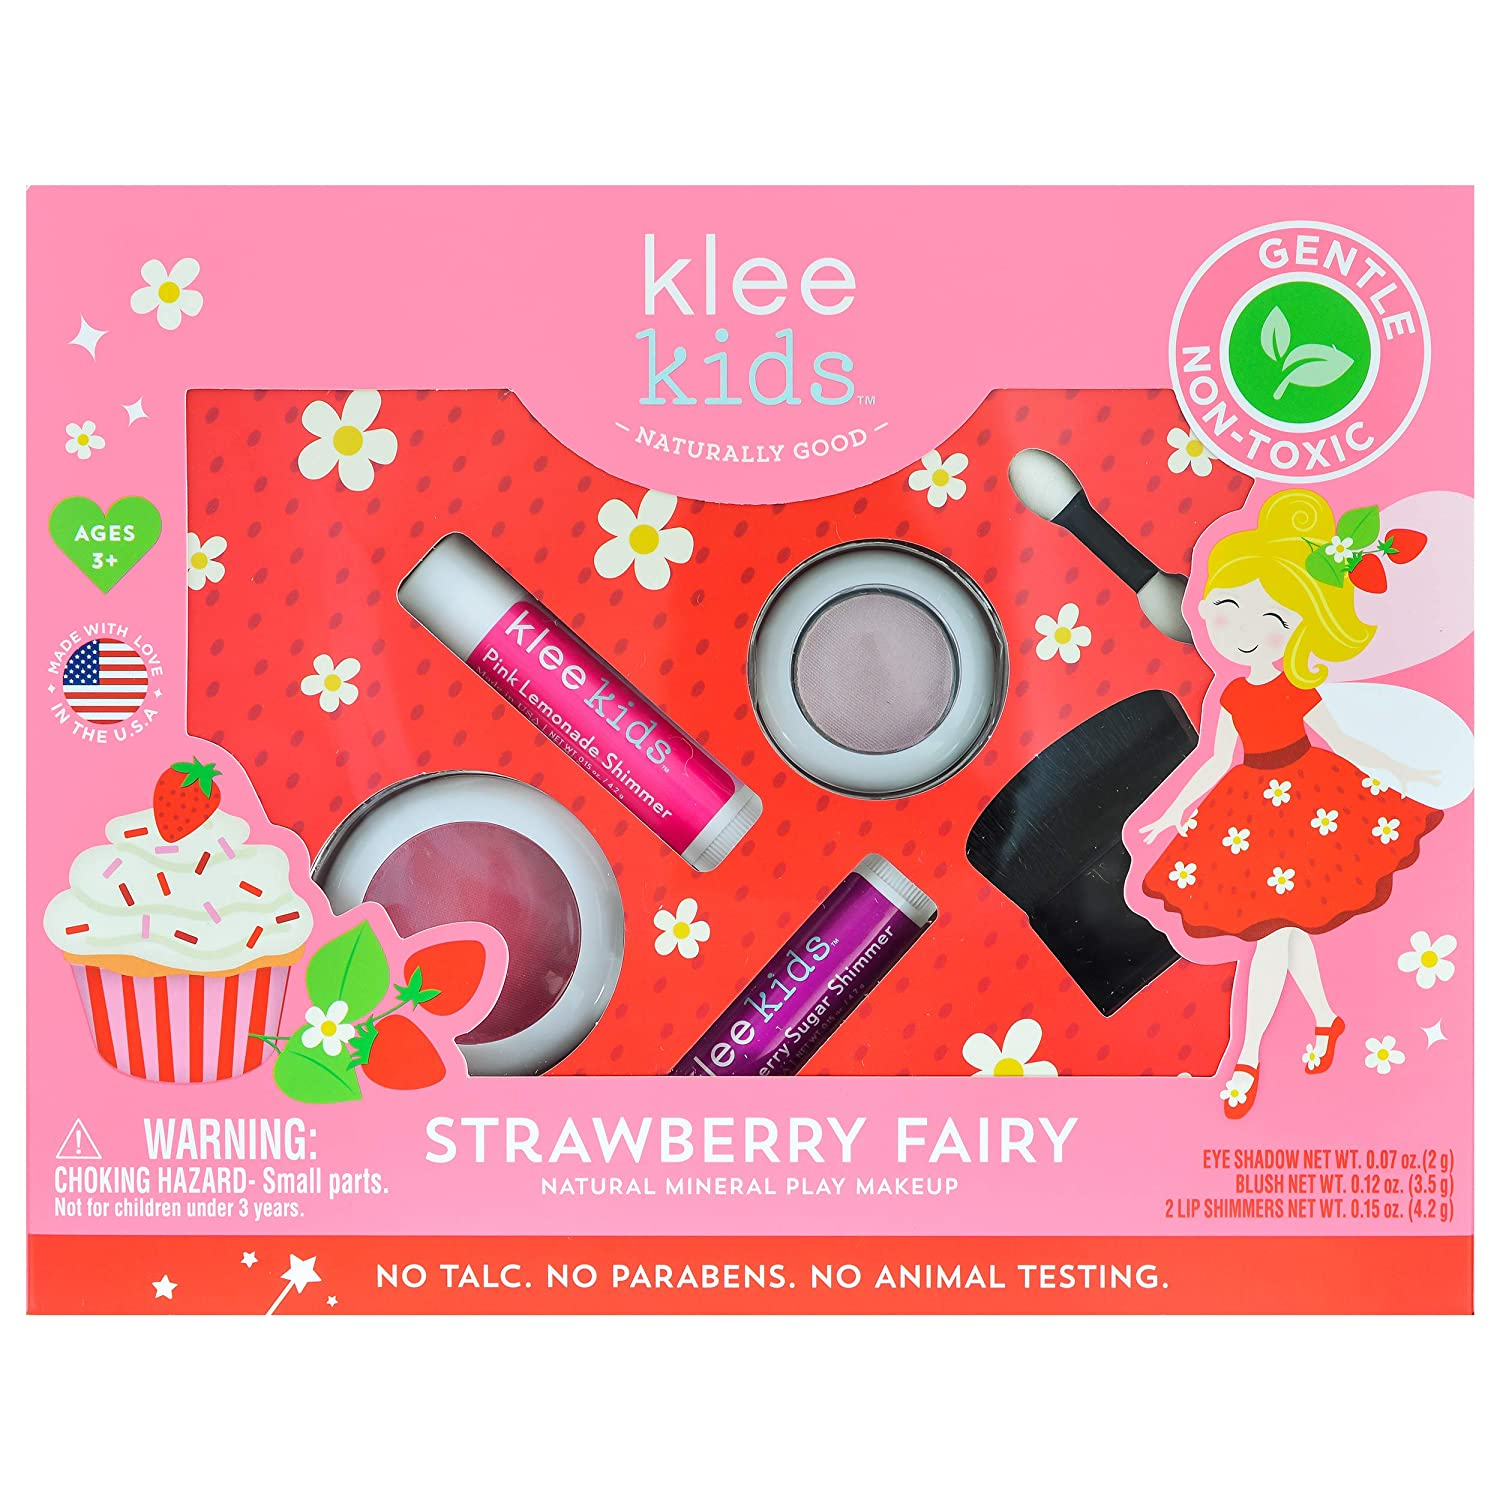 Strawberry Fairy – Klee Kids Natural Mineral Makeup 4 Piece Kit with Pressed Powder Compacts. Non-Toxic. Made in USA.